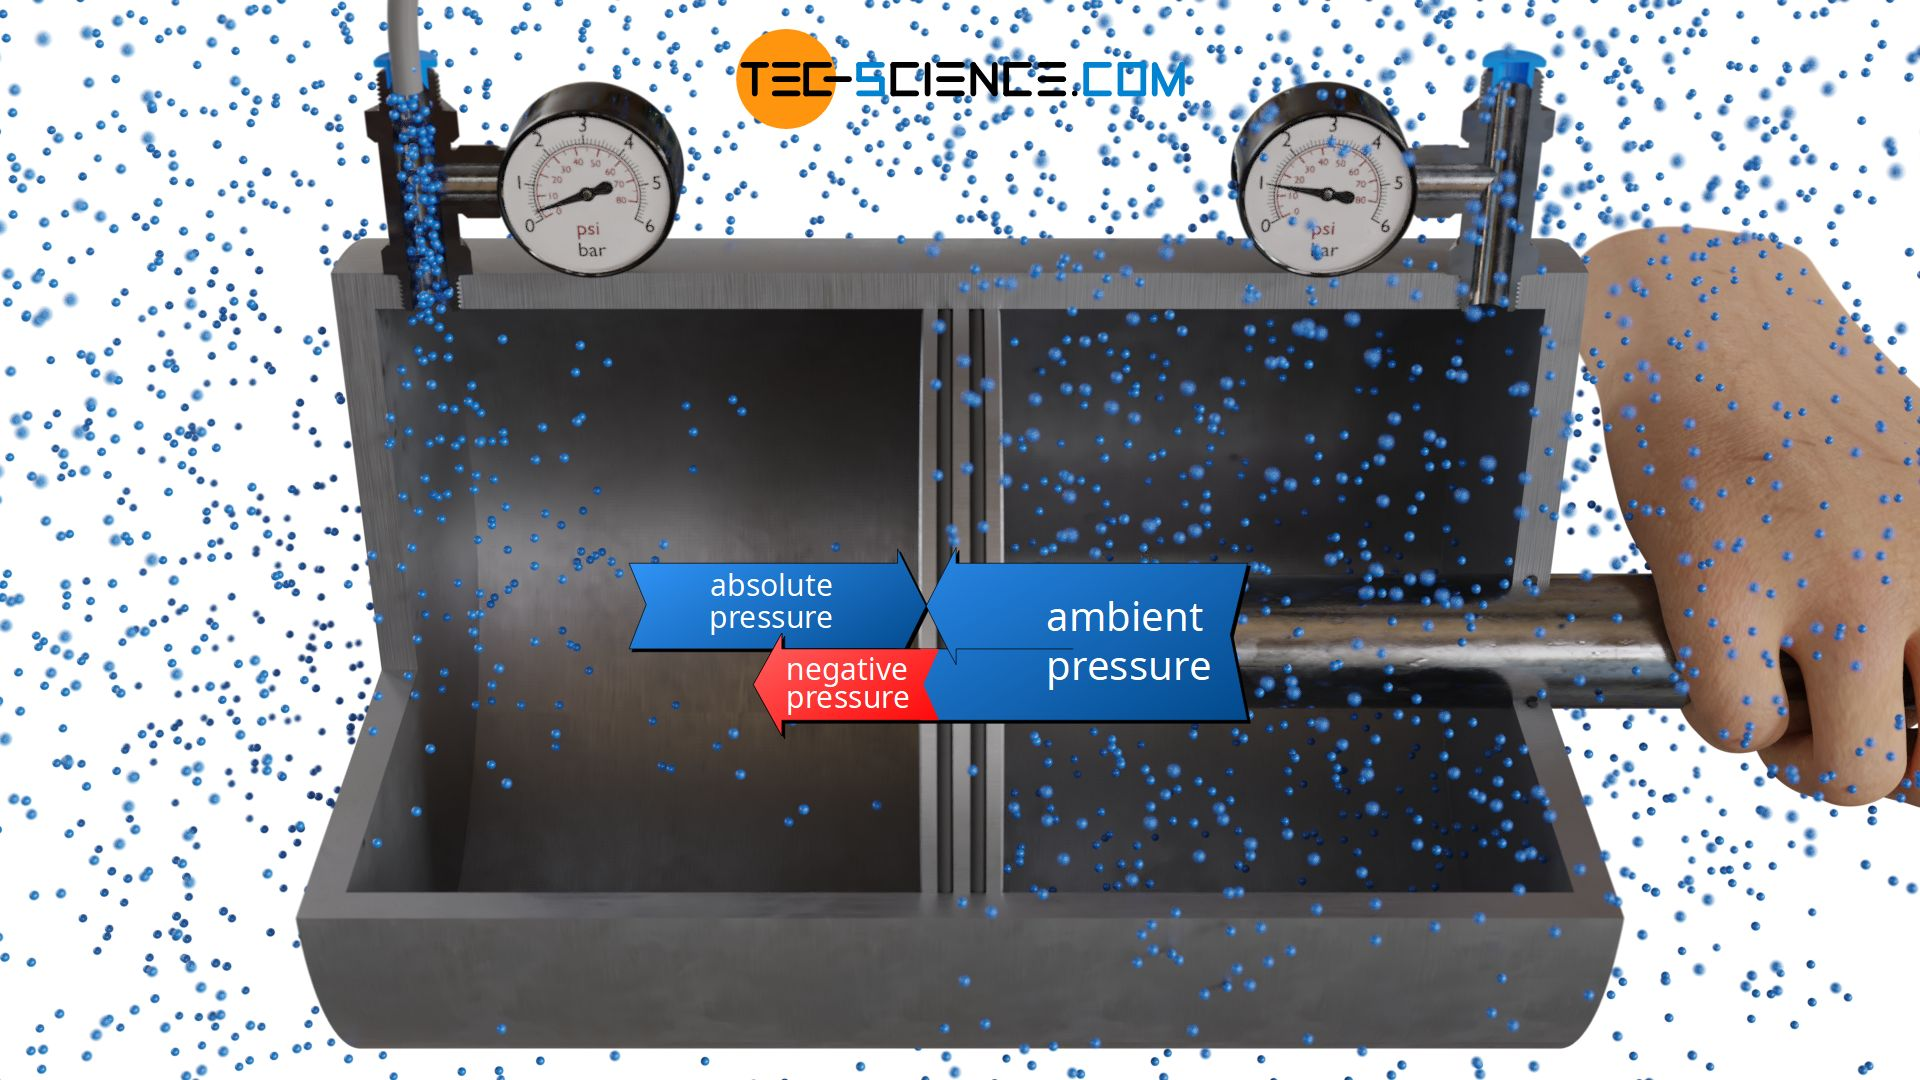 Relationship between negative pressure and absolute pressure